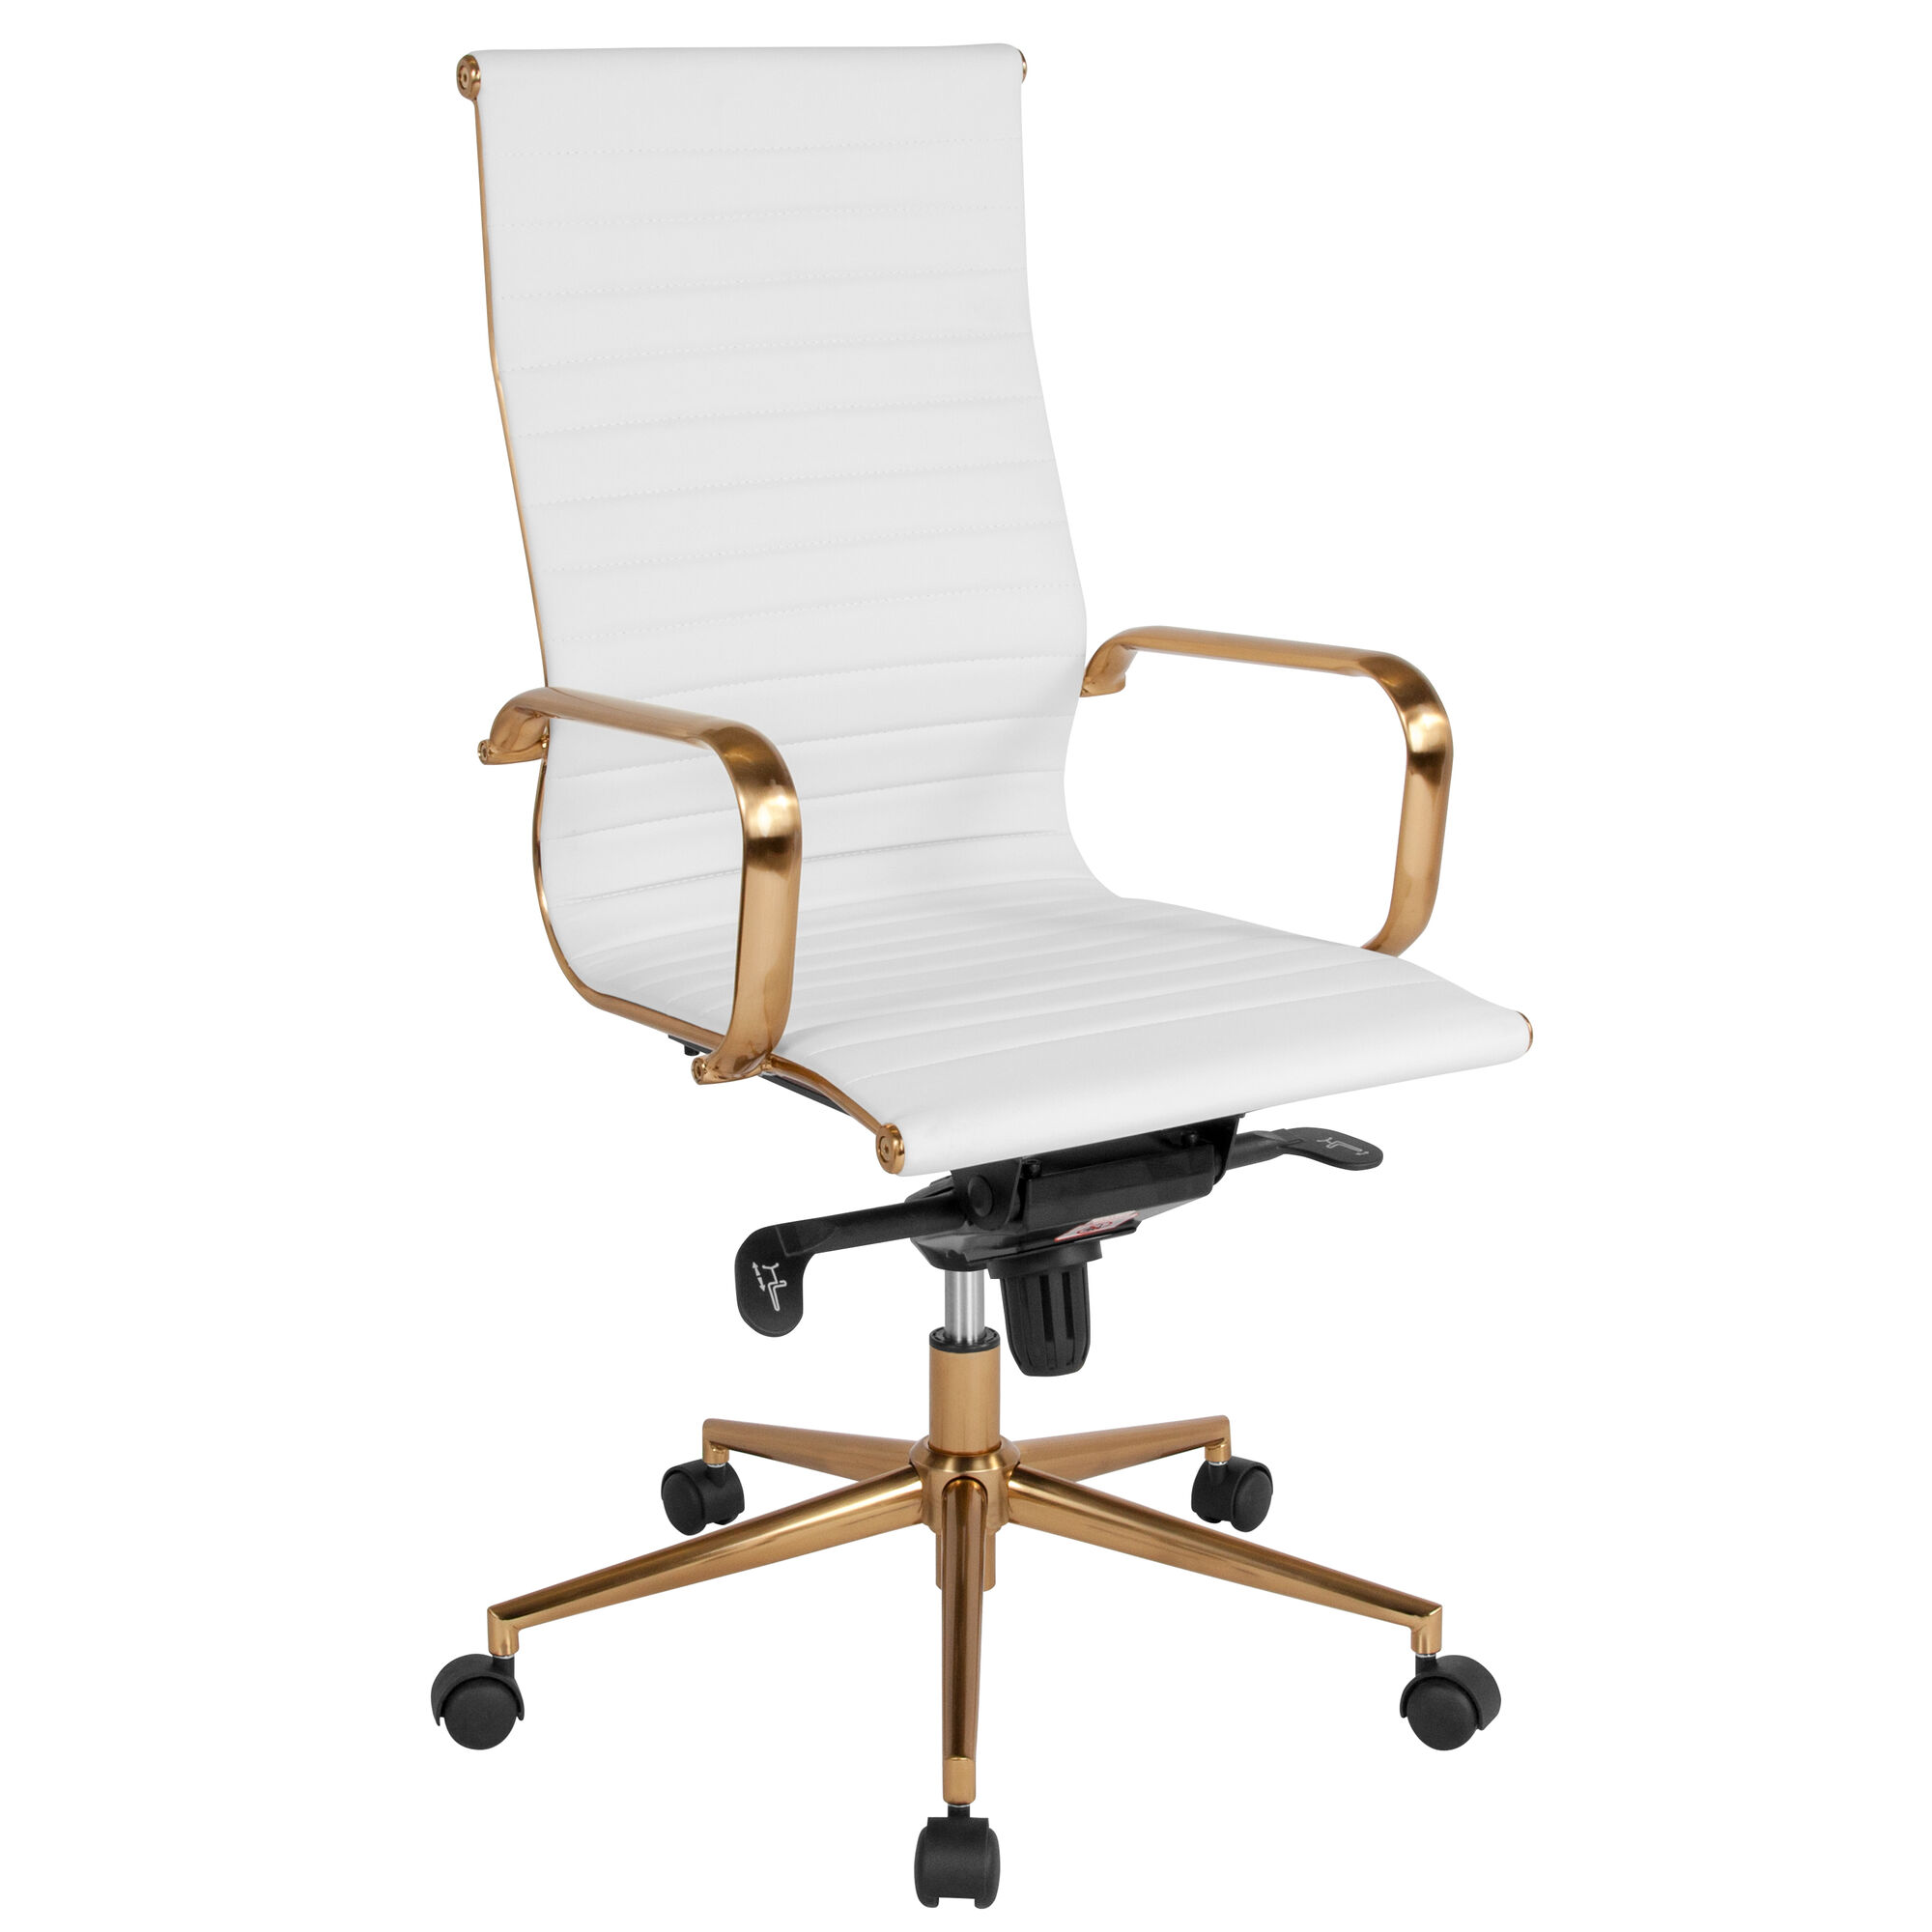 Awe Inspiring High Back White Ribbed Leather Executive Swivel Office Chair With Gold Frame Knee Tilt Control And Arms Alphanode Cool Chair Designs And Ideas Alphanodeonline